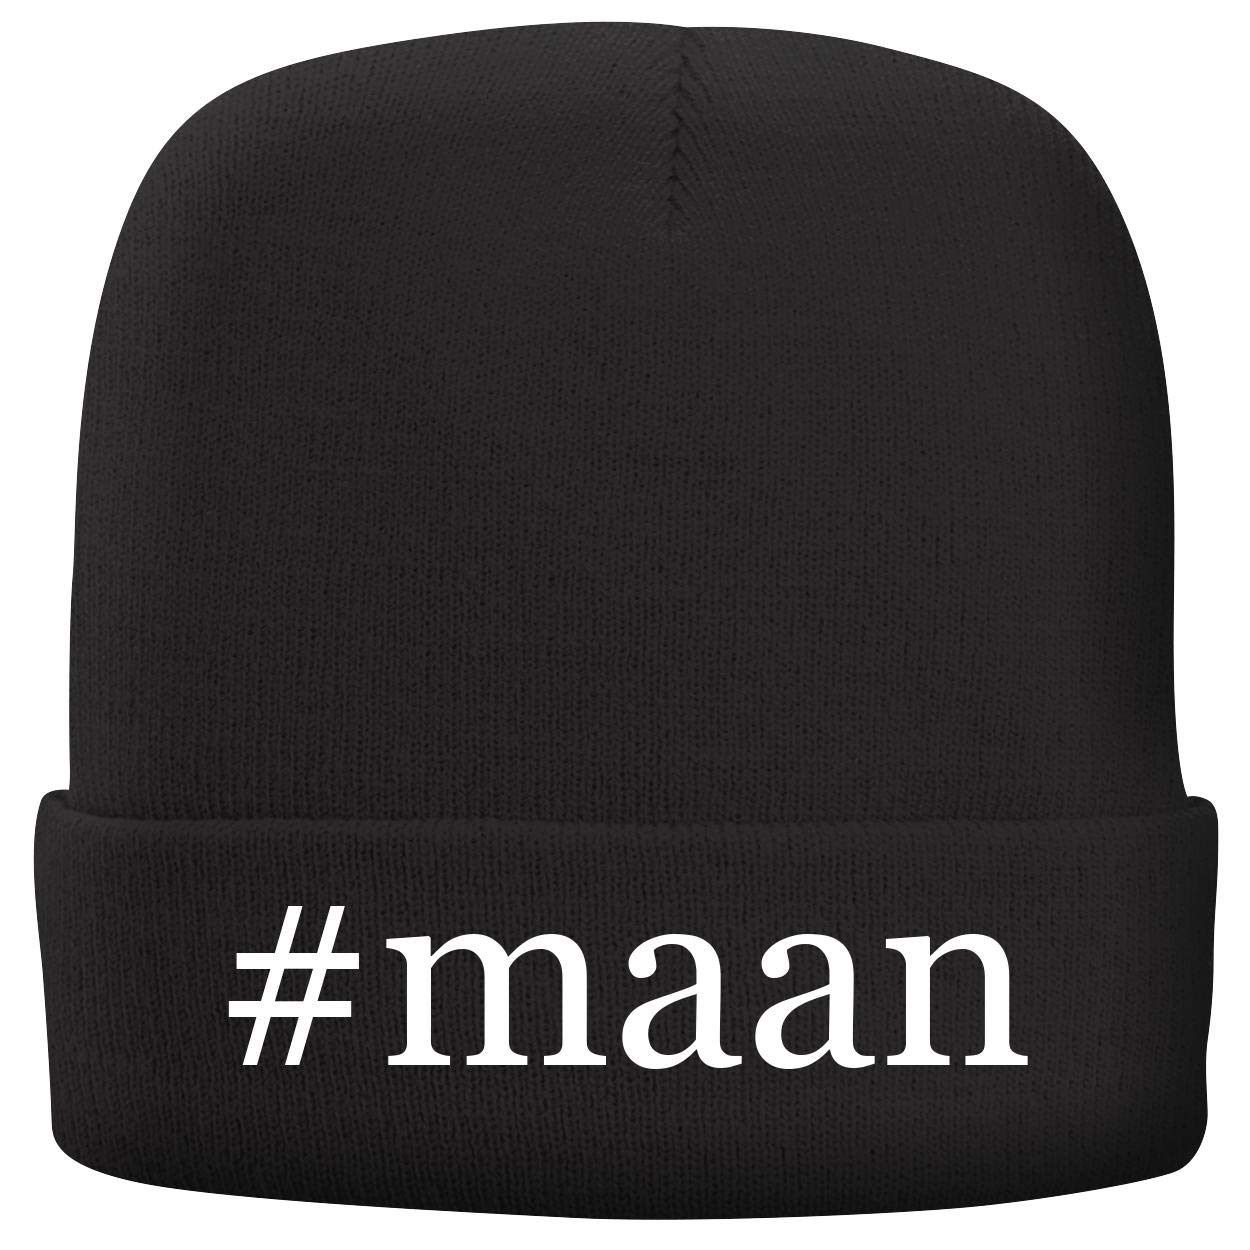 BH Cool Designs #maan - Adult Hashtag Comfortable Fleece Lined Beanie, Black by BH Cool Designs